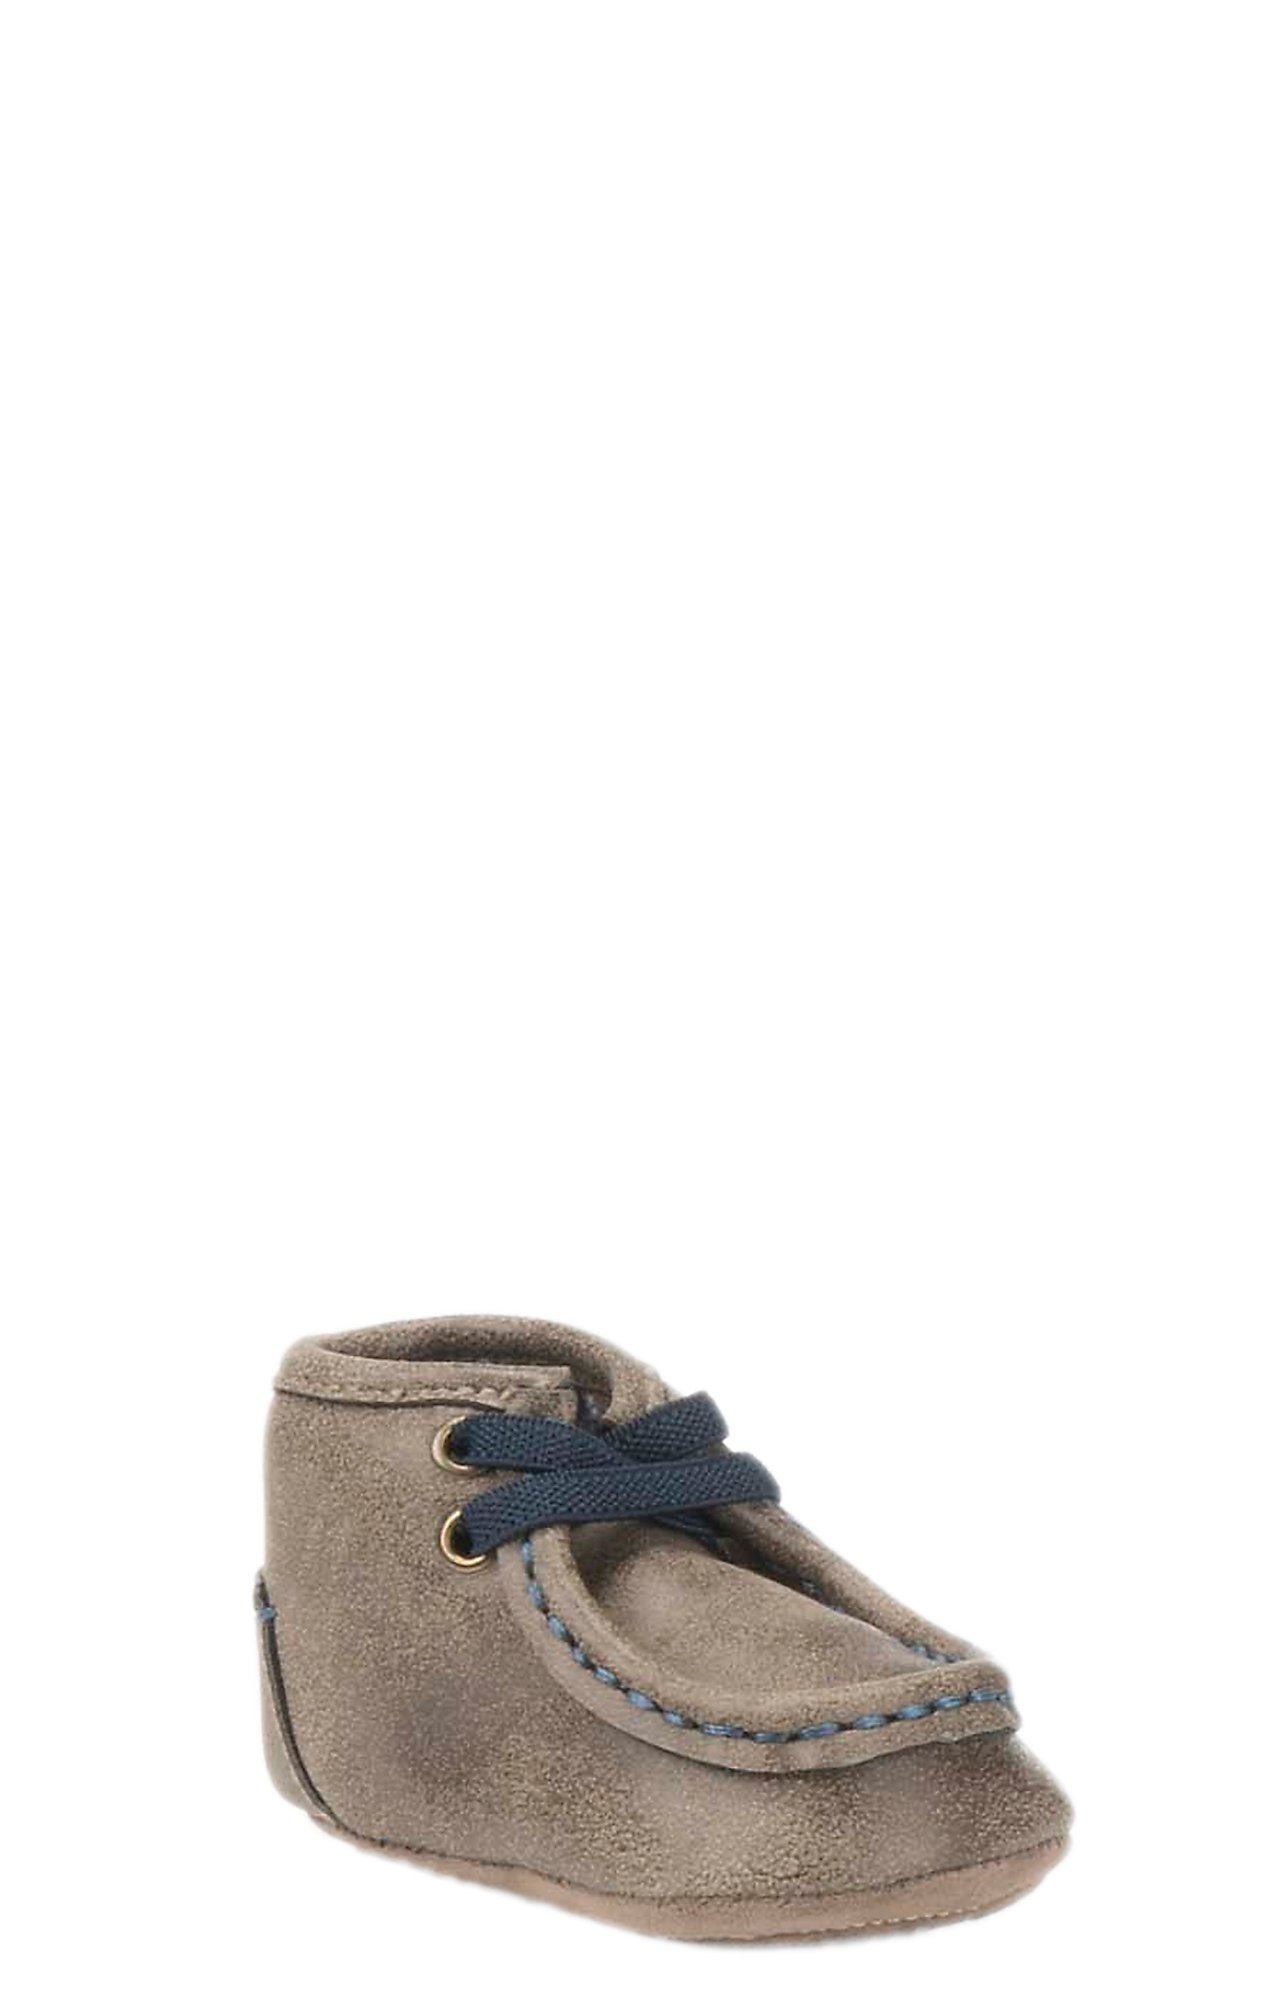 Double Barrel Western Infant Brown with Navy Laces Moccasins 87703980fa